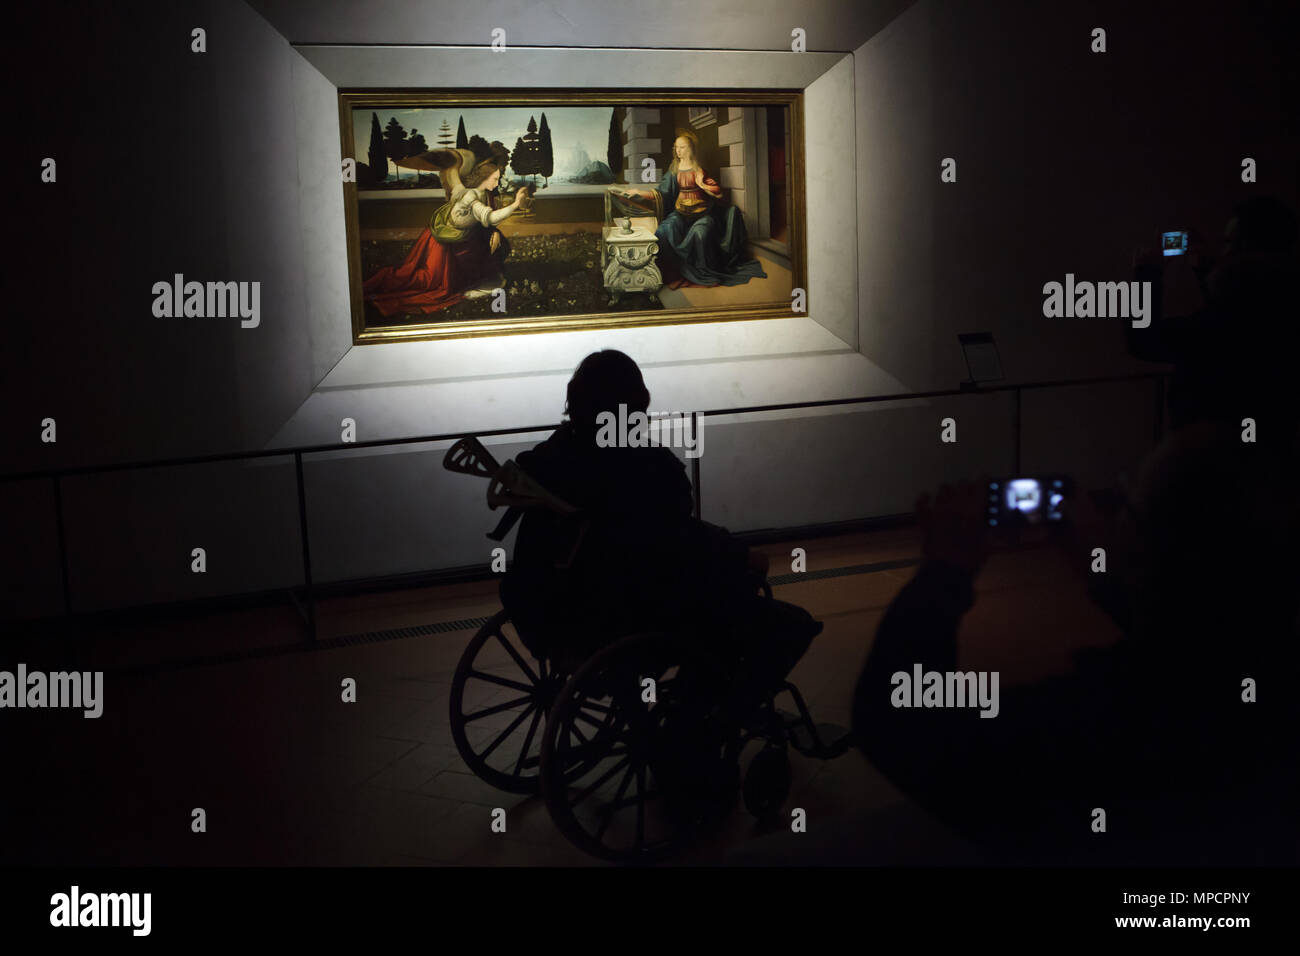 Disabled person in the wheelchair in front of the painting Annunciation (1472–1475) by Italian Renaissance painter Leonardo da Vinci displayed in the Uffizi Gallery (Galleria degli Uffizi) in Florence, Tuscany, Italy. - Stock Image